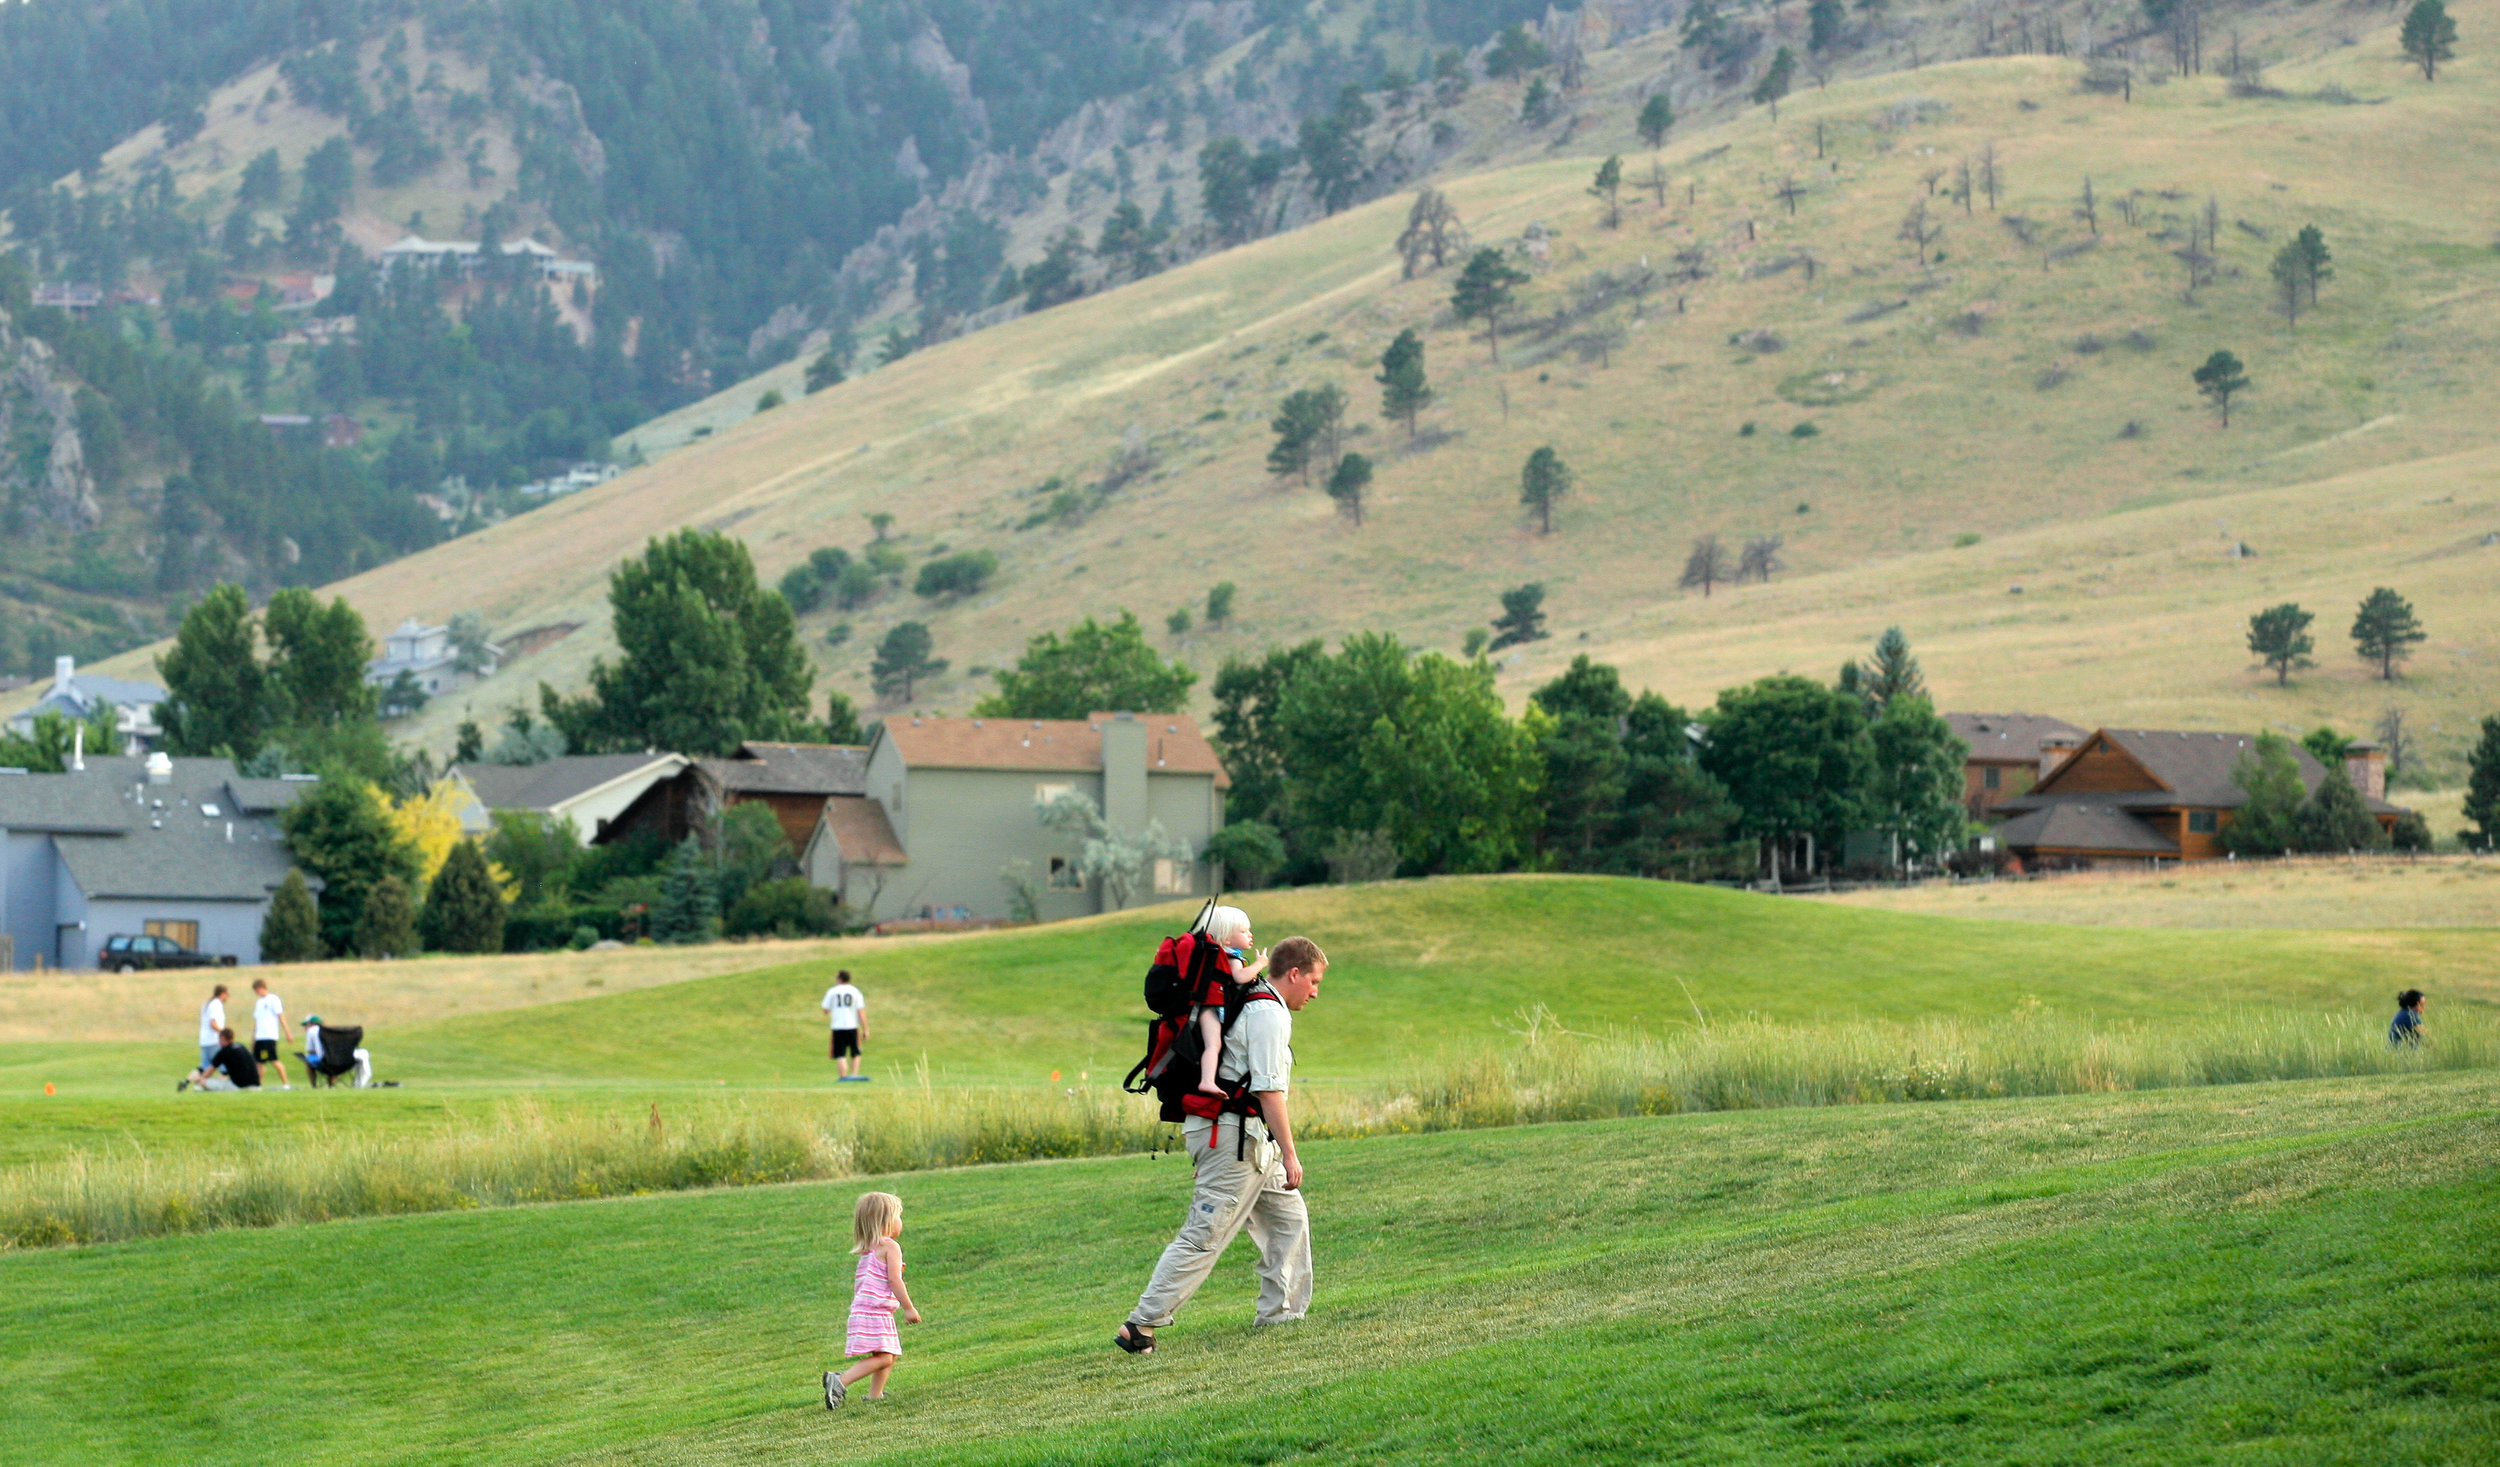 Dad hiking with kid in backpack and child following on a trail in a park surrounded by mountains.